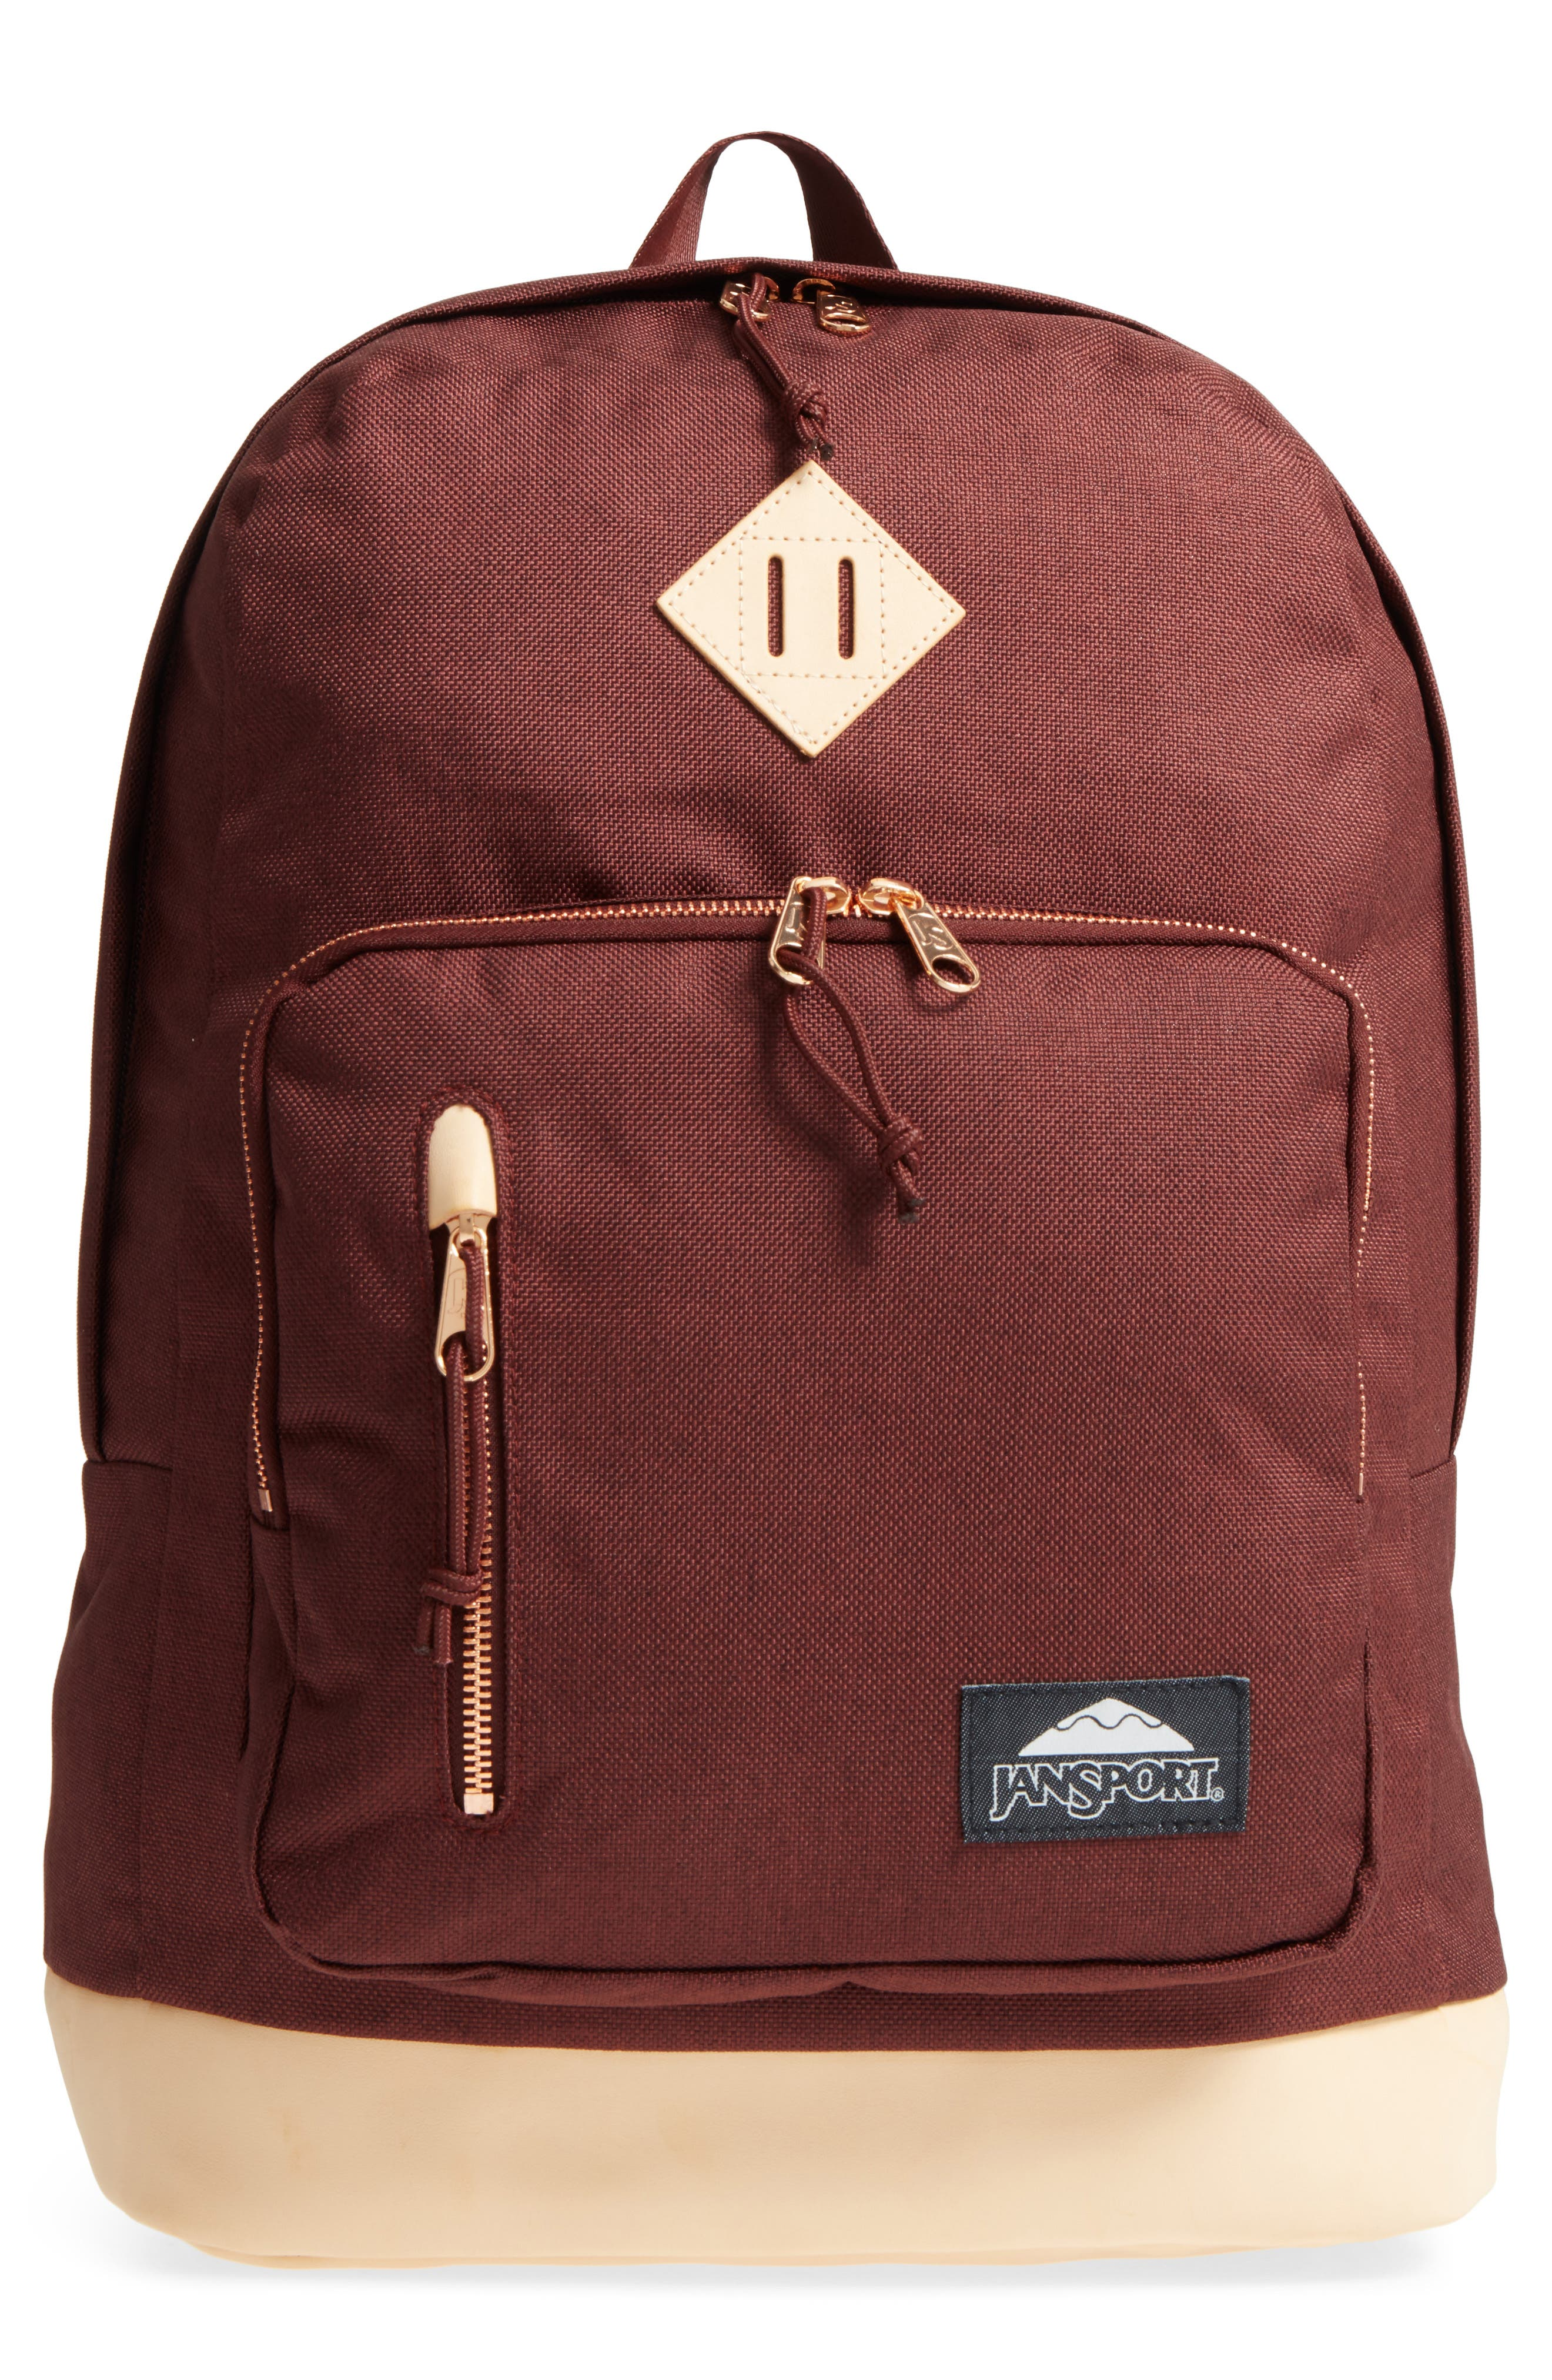 Jansport Red Rocks Axiom Backpack